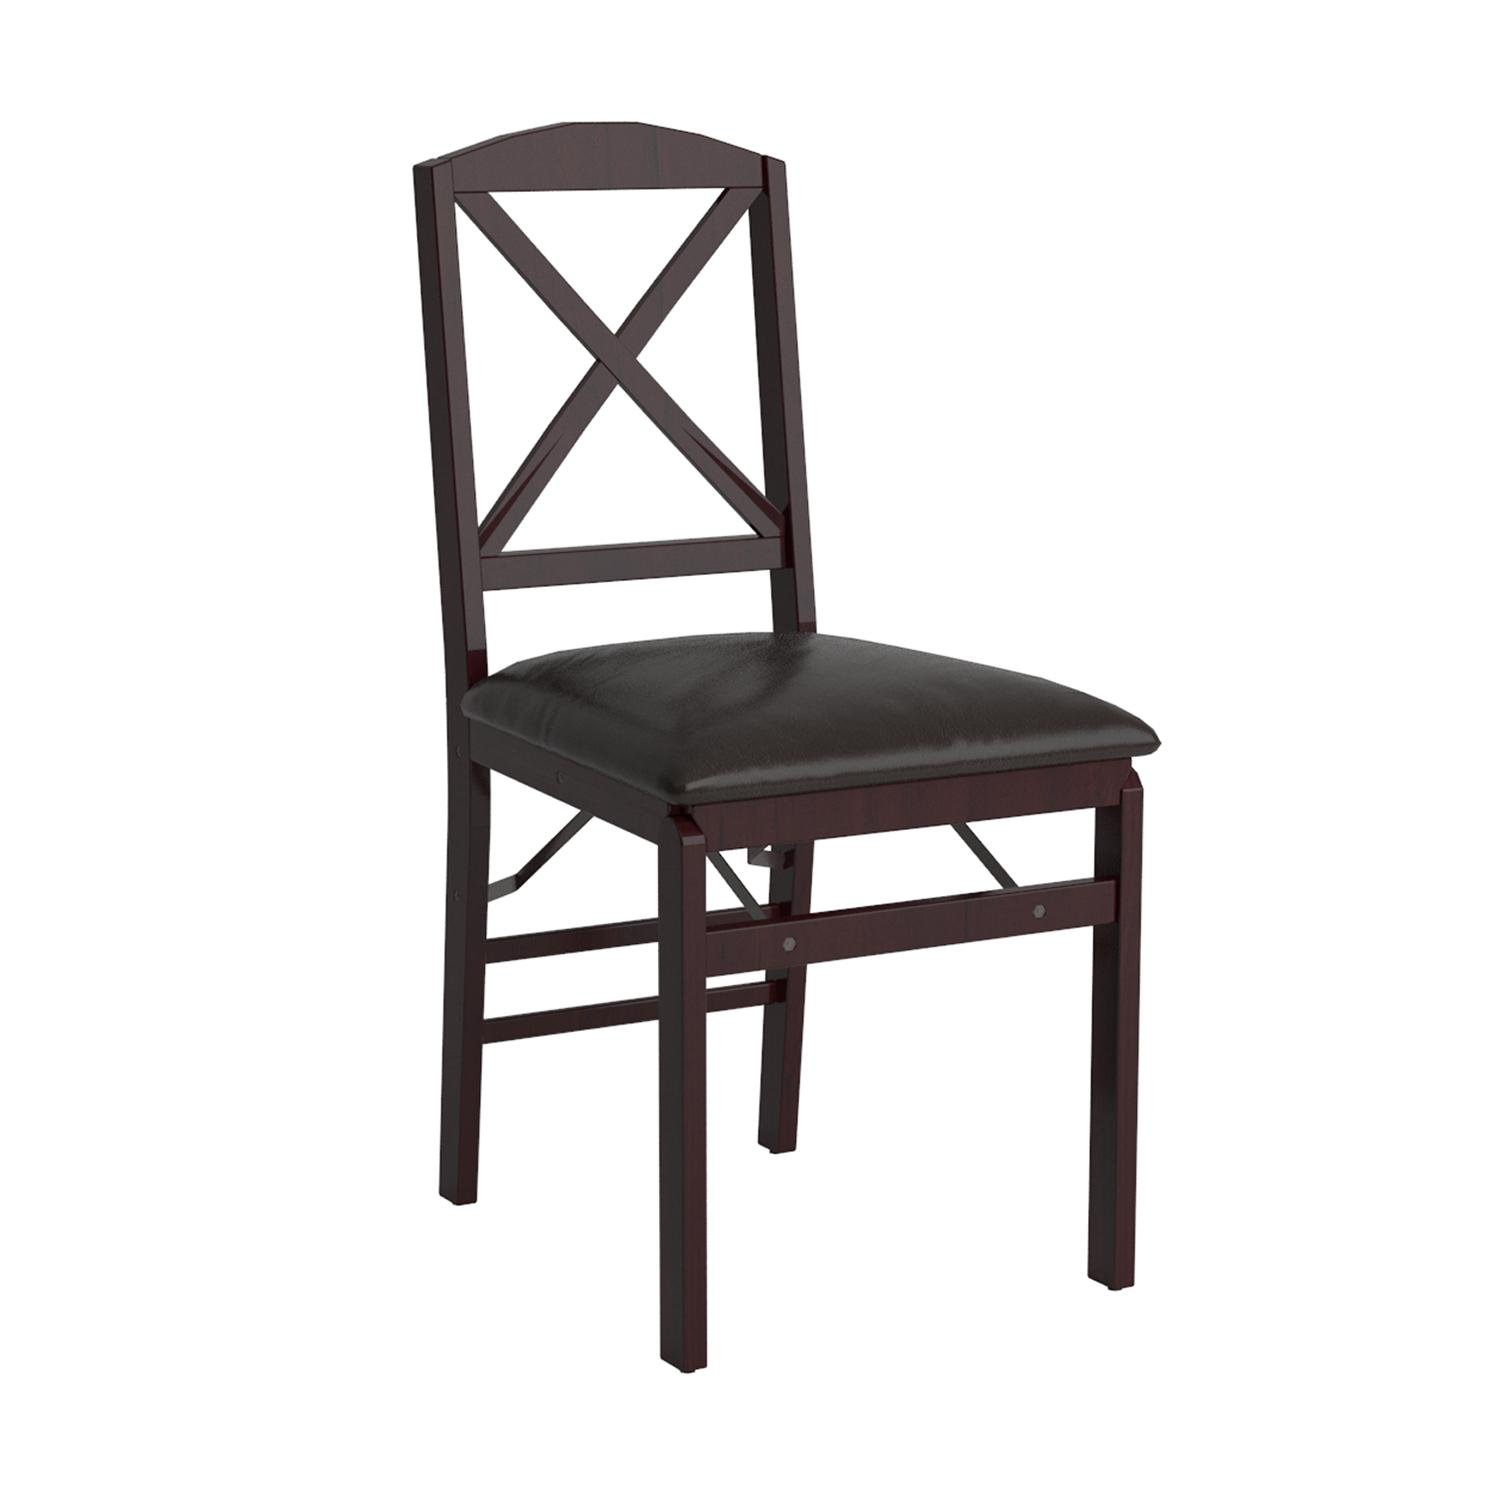 Cosco Espresso Wood Folding Chair vinyl seat & X-Back (2-pack)